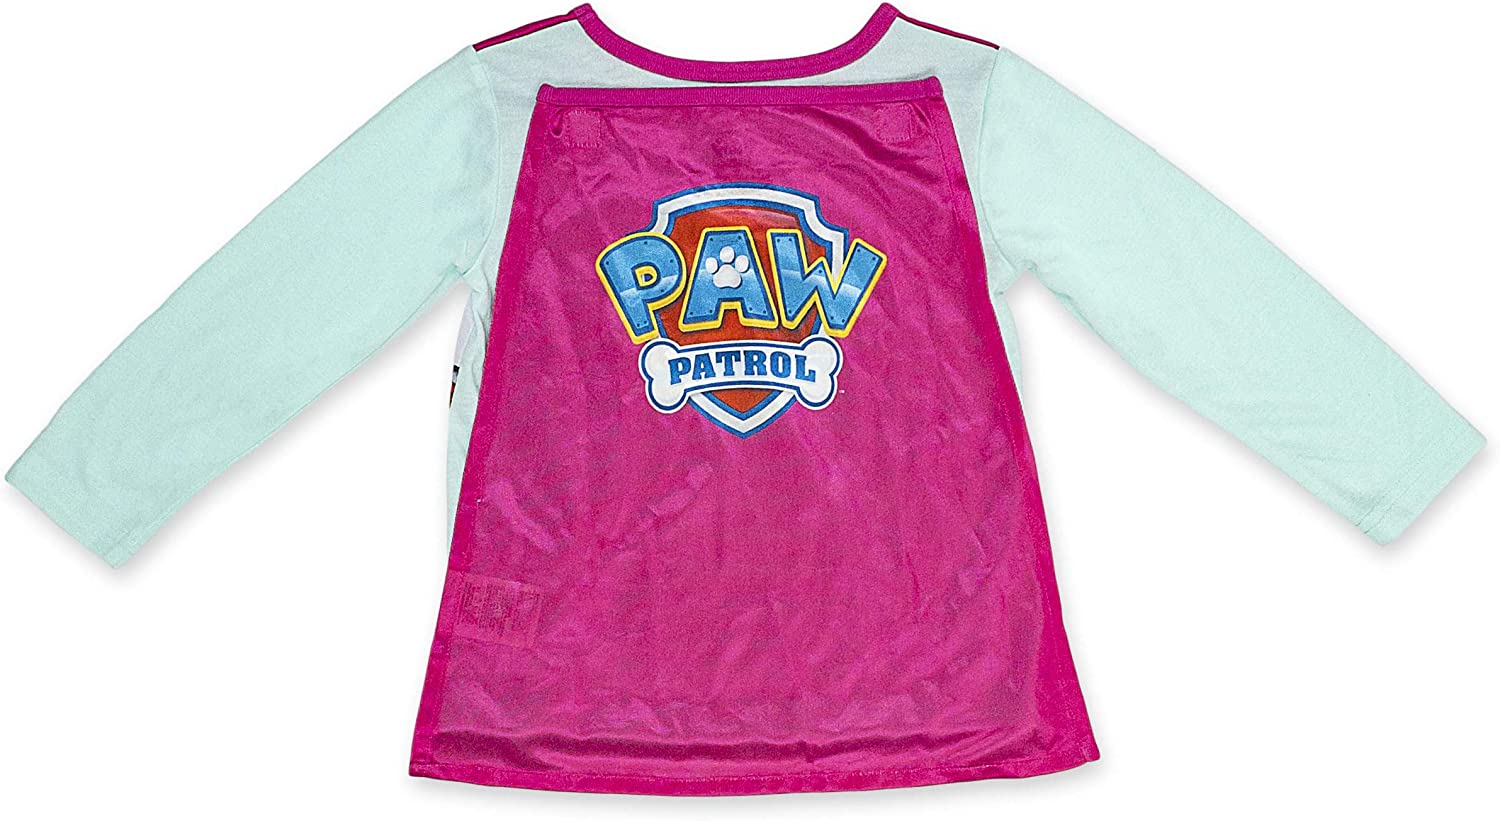 3-6 years Girls Paw Patrol RH1143 Lightweight Hooded Jacket with Bag Size